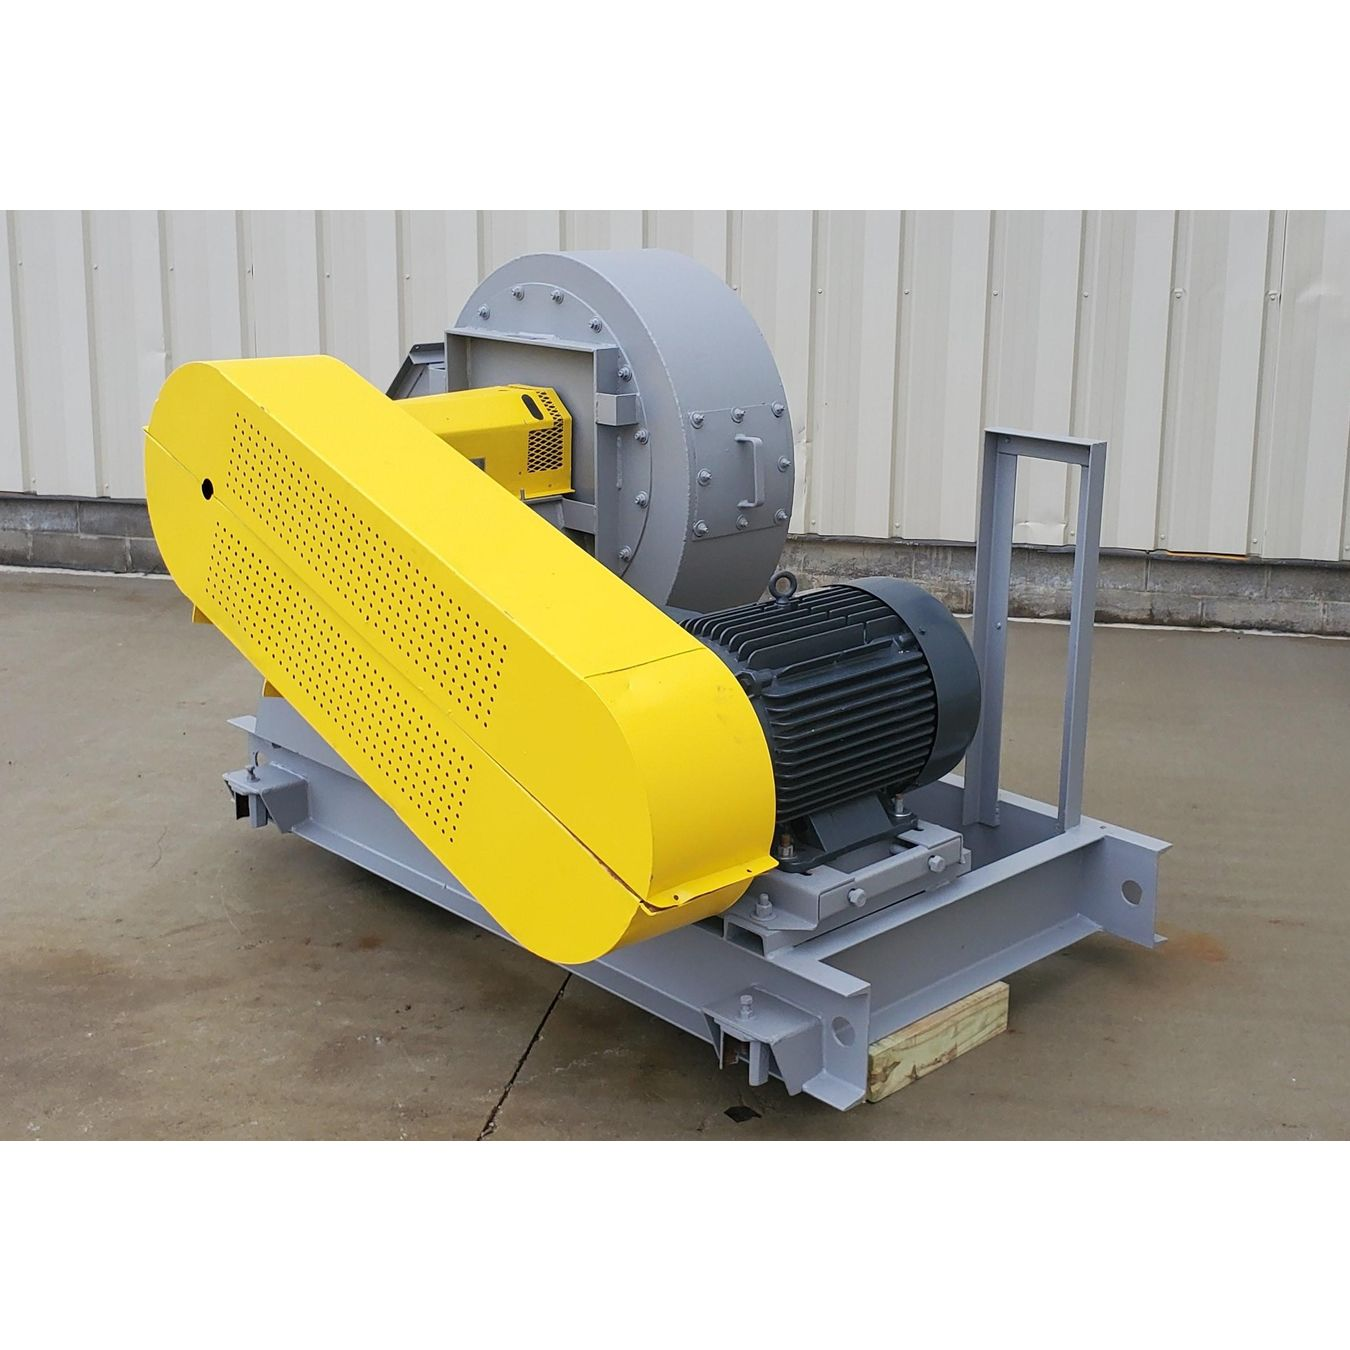 High Static Pressure Blowers : Used cfm quot sp twin city high pressure fan size